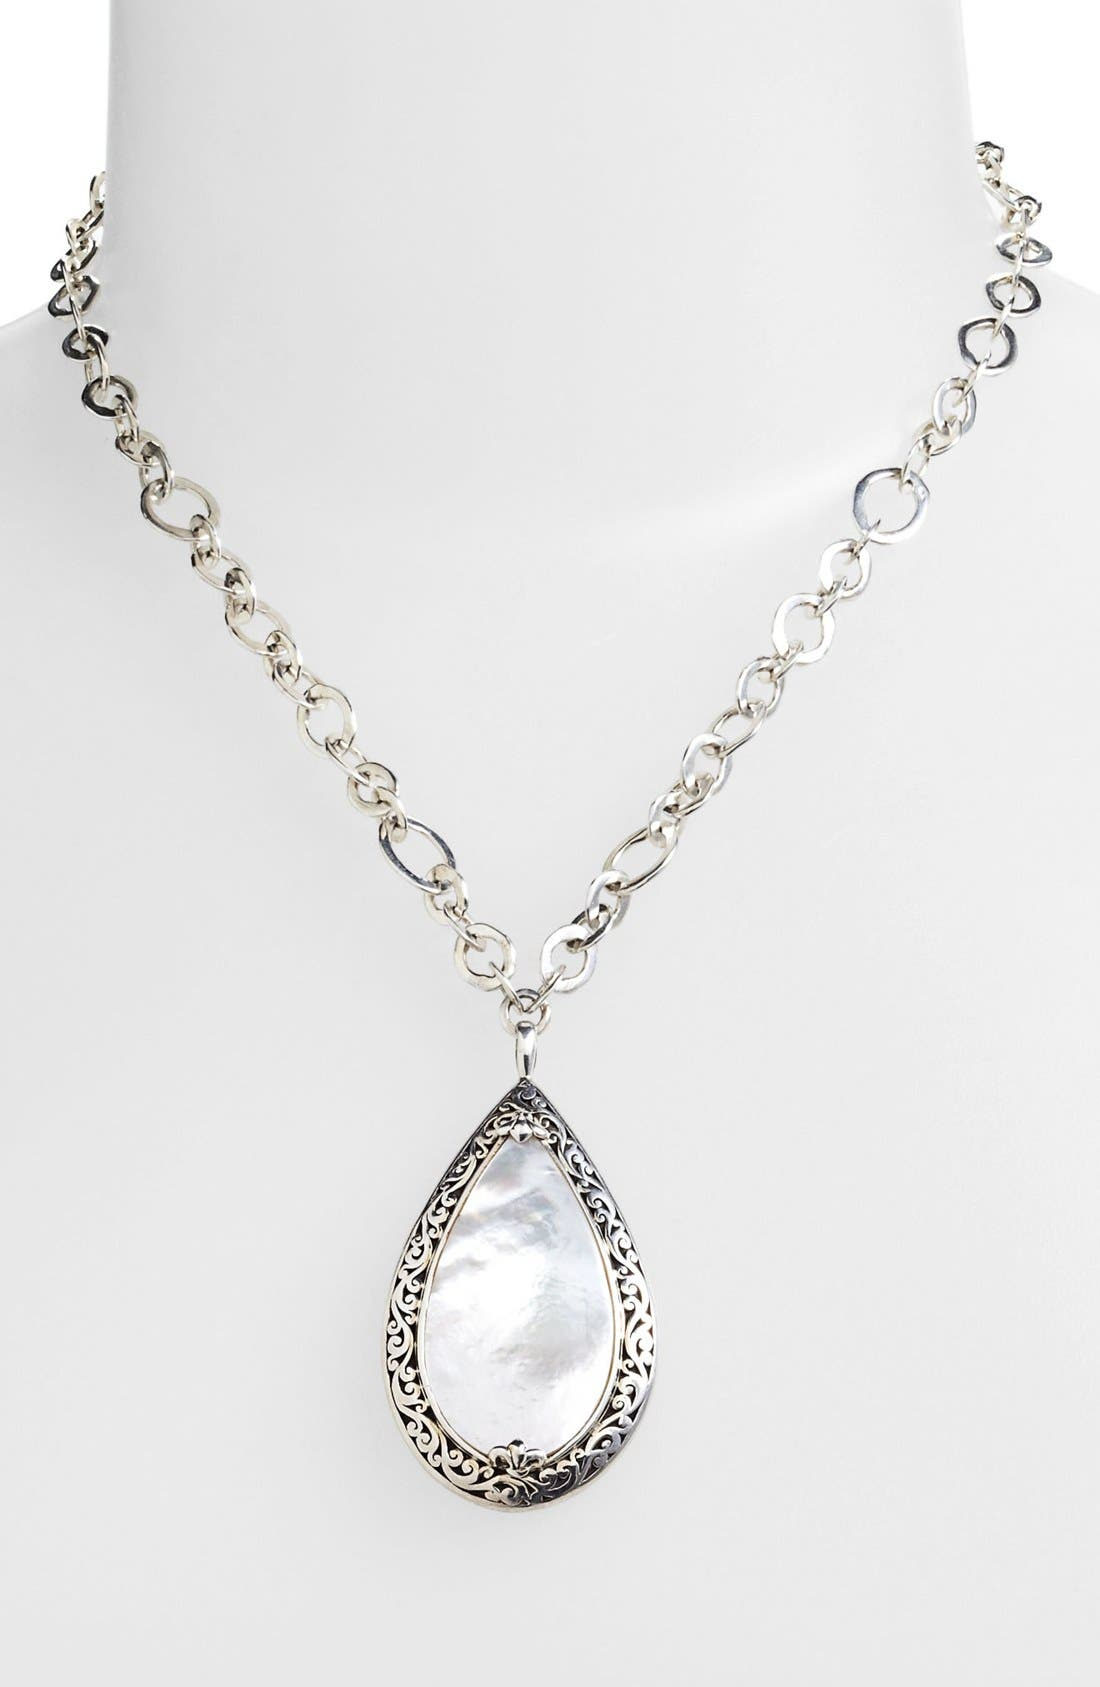 Main Image - Lois Hill Large Mother-of-Pearl Teardrop Pendant Necklace